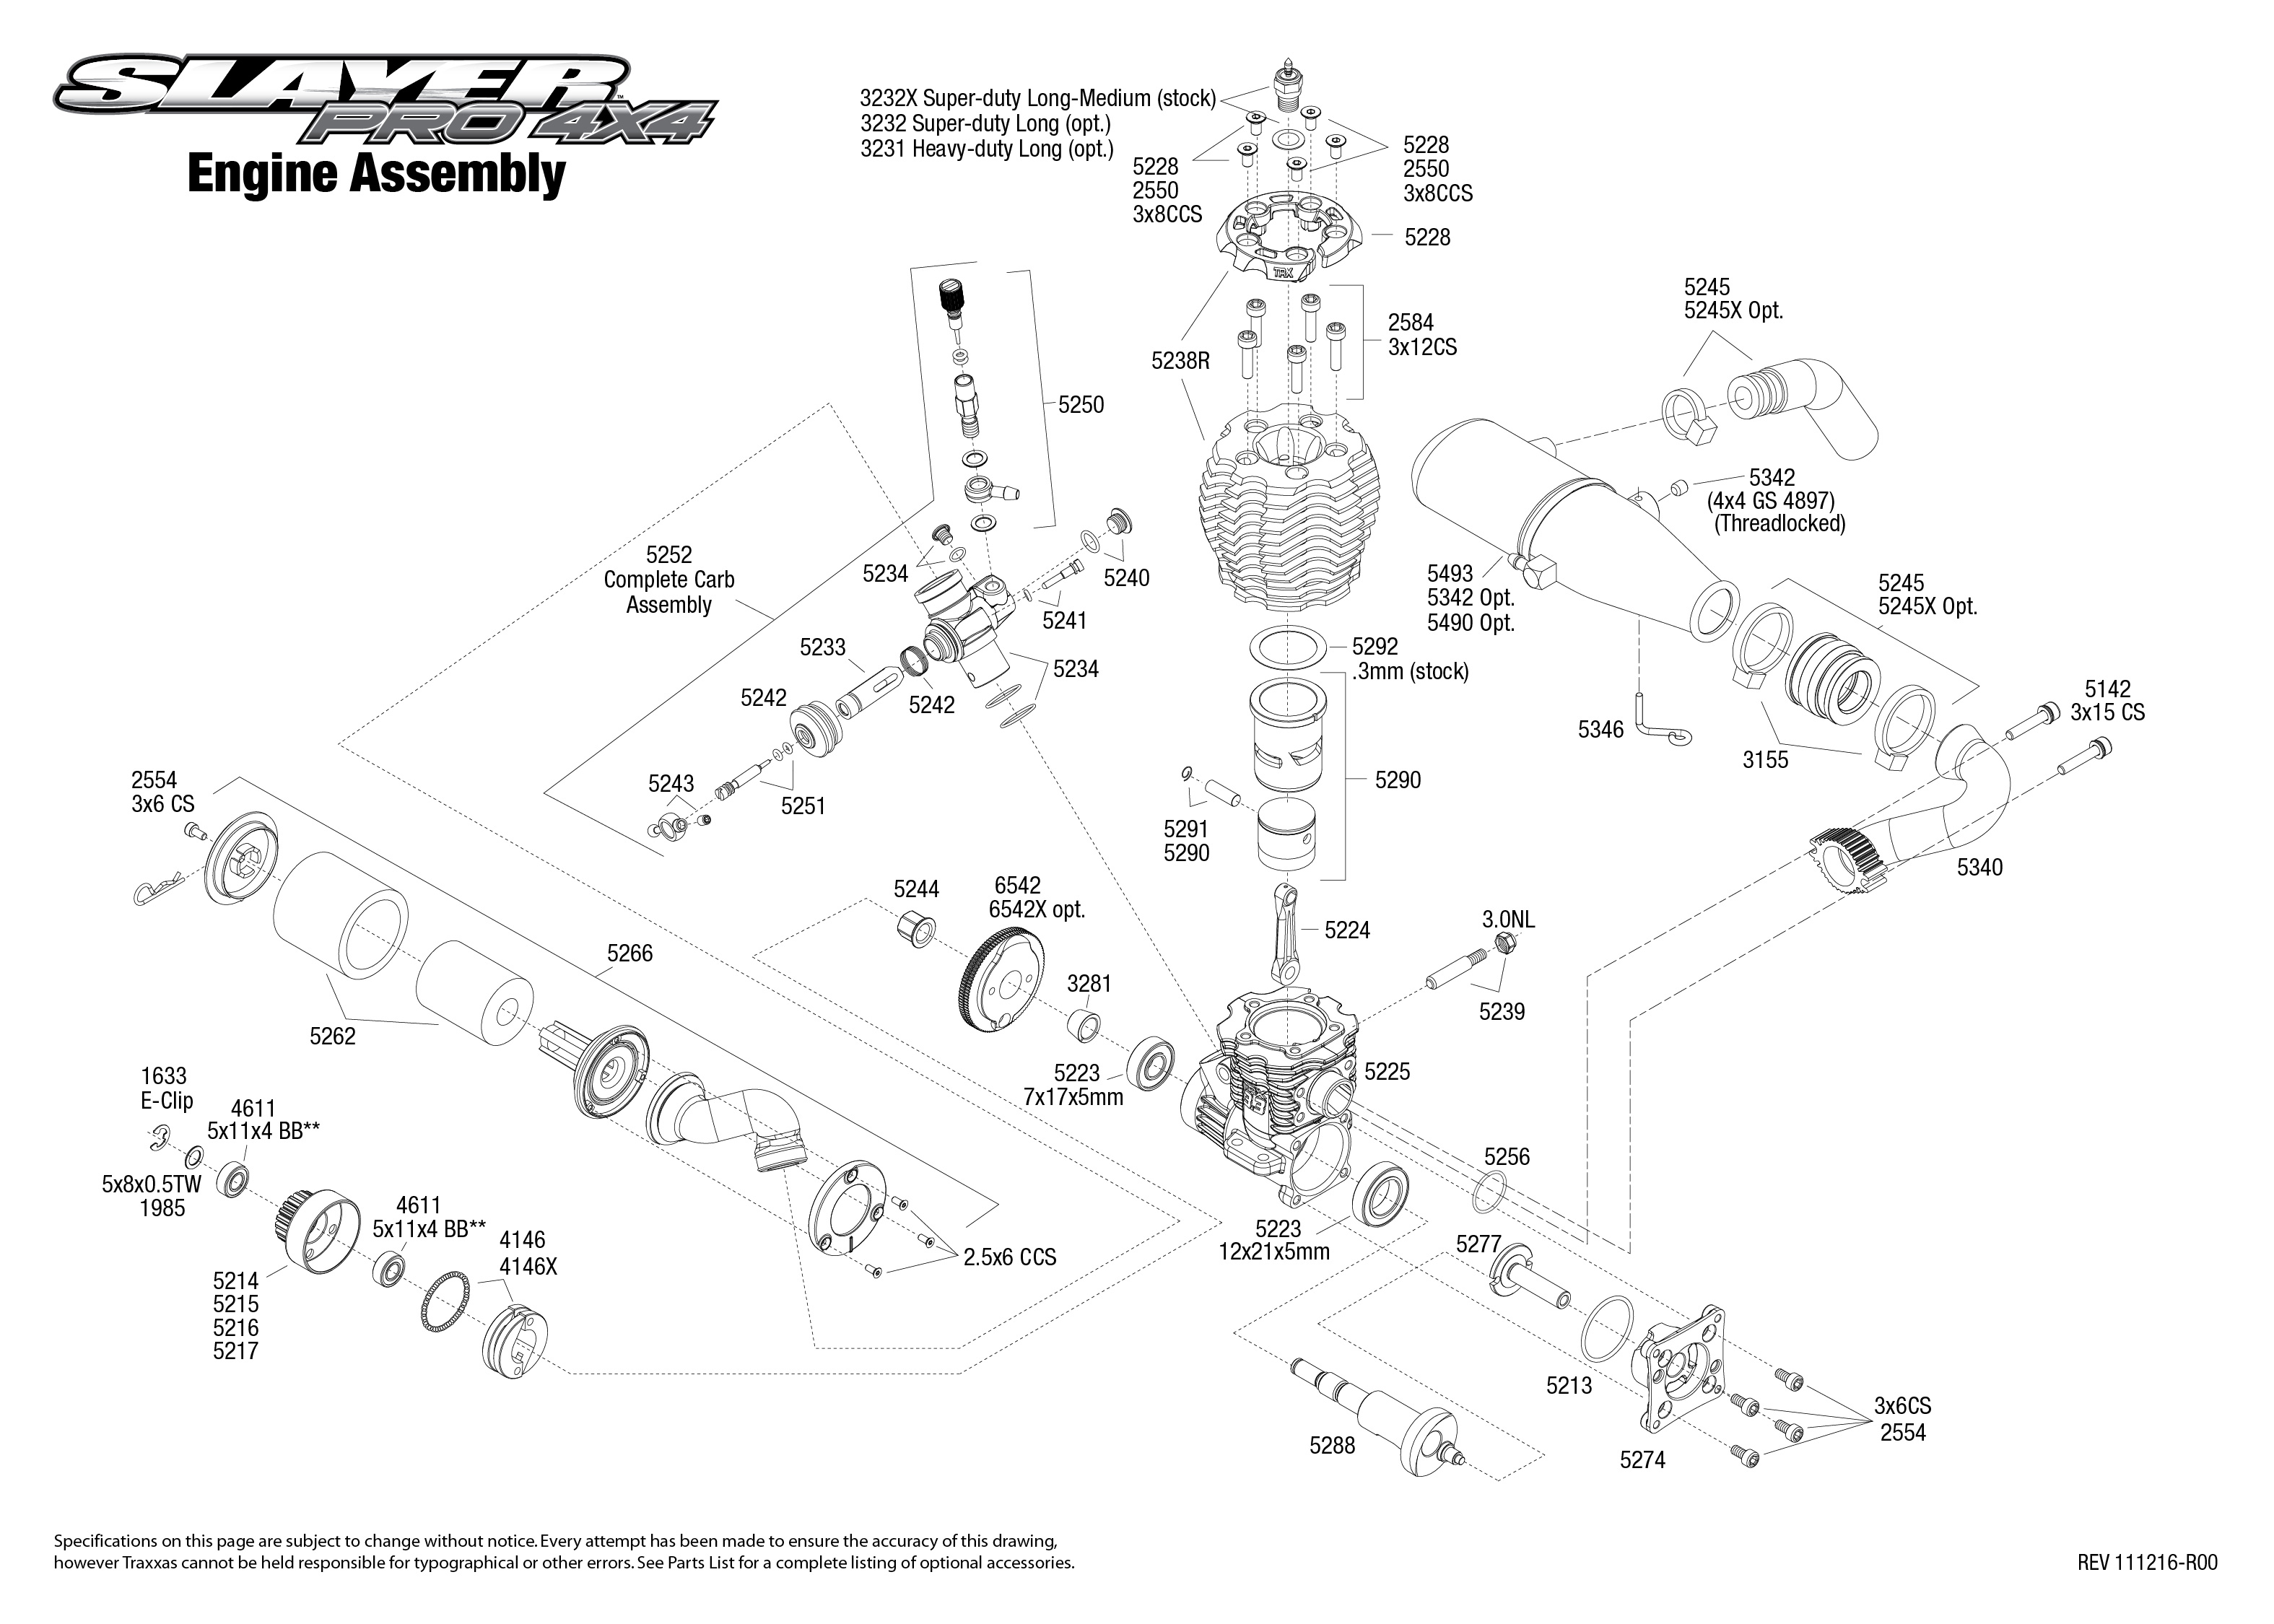 Traxxas 3 3 engine diagram free download wiring diagram 5907 engine exploded view slayer pro 4x4 traxxas traxxas nitro sport diagram use magnifier pooptronica Images